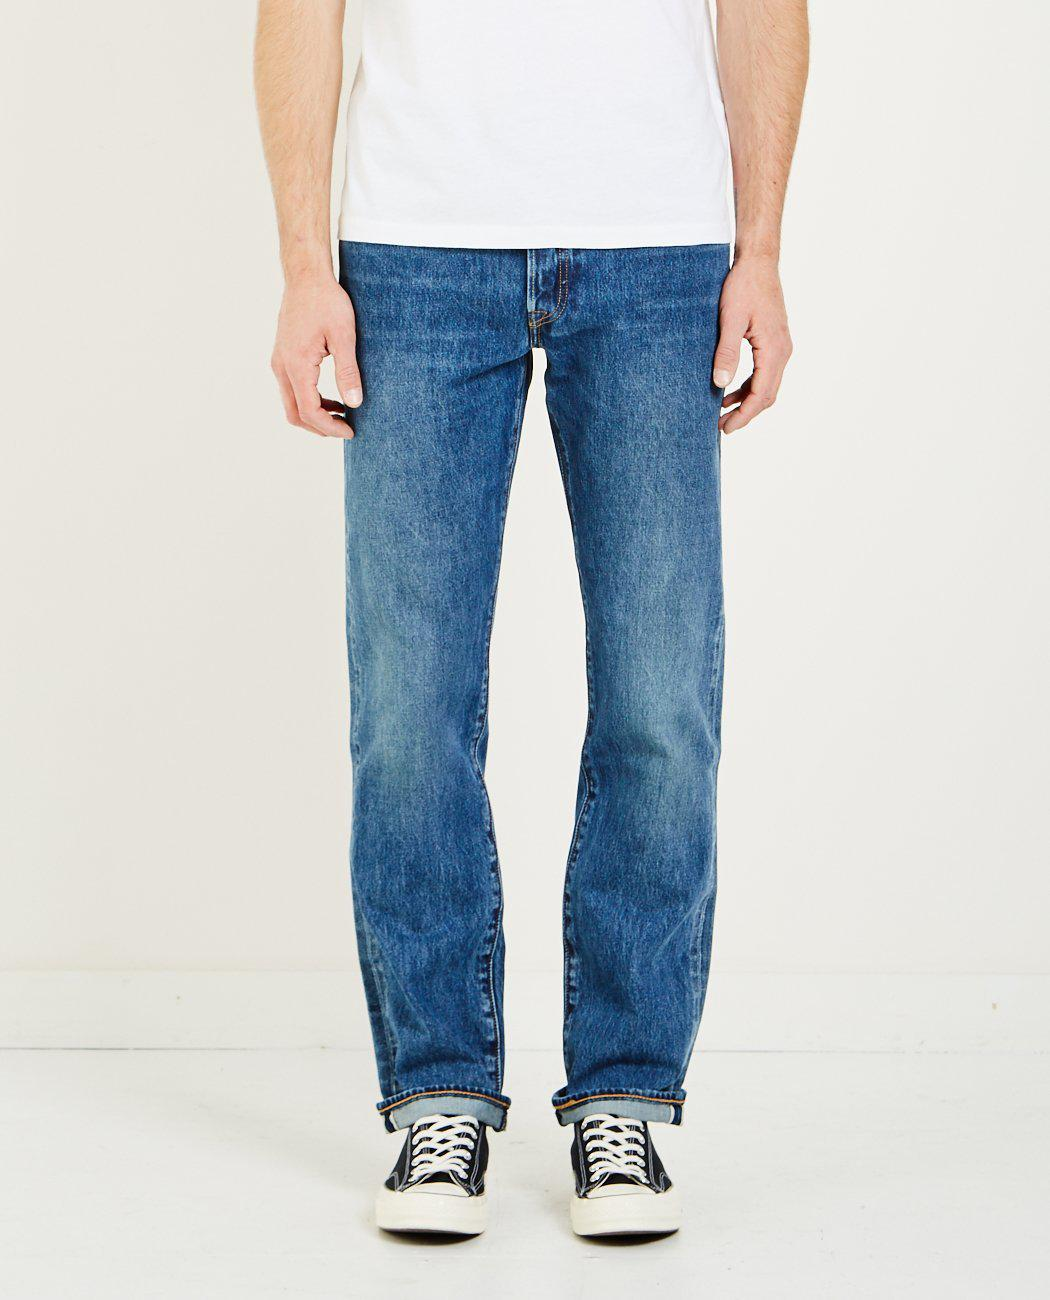 501 Electric Avenue jeans - Blue Levi's From China Cheap Price Choice Cheap Online Free Shipping With Paypal Cheap Deals 1NgnGGG1es